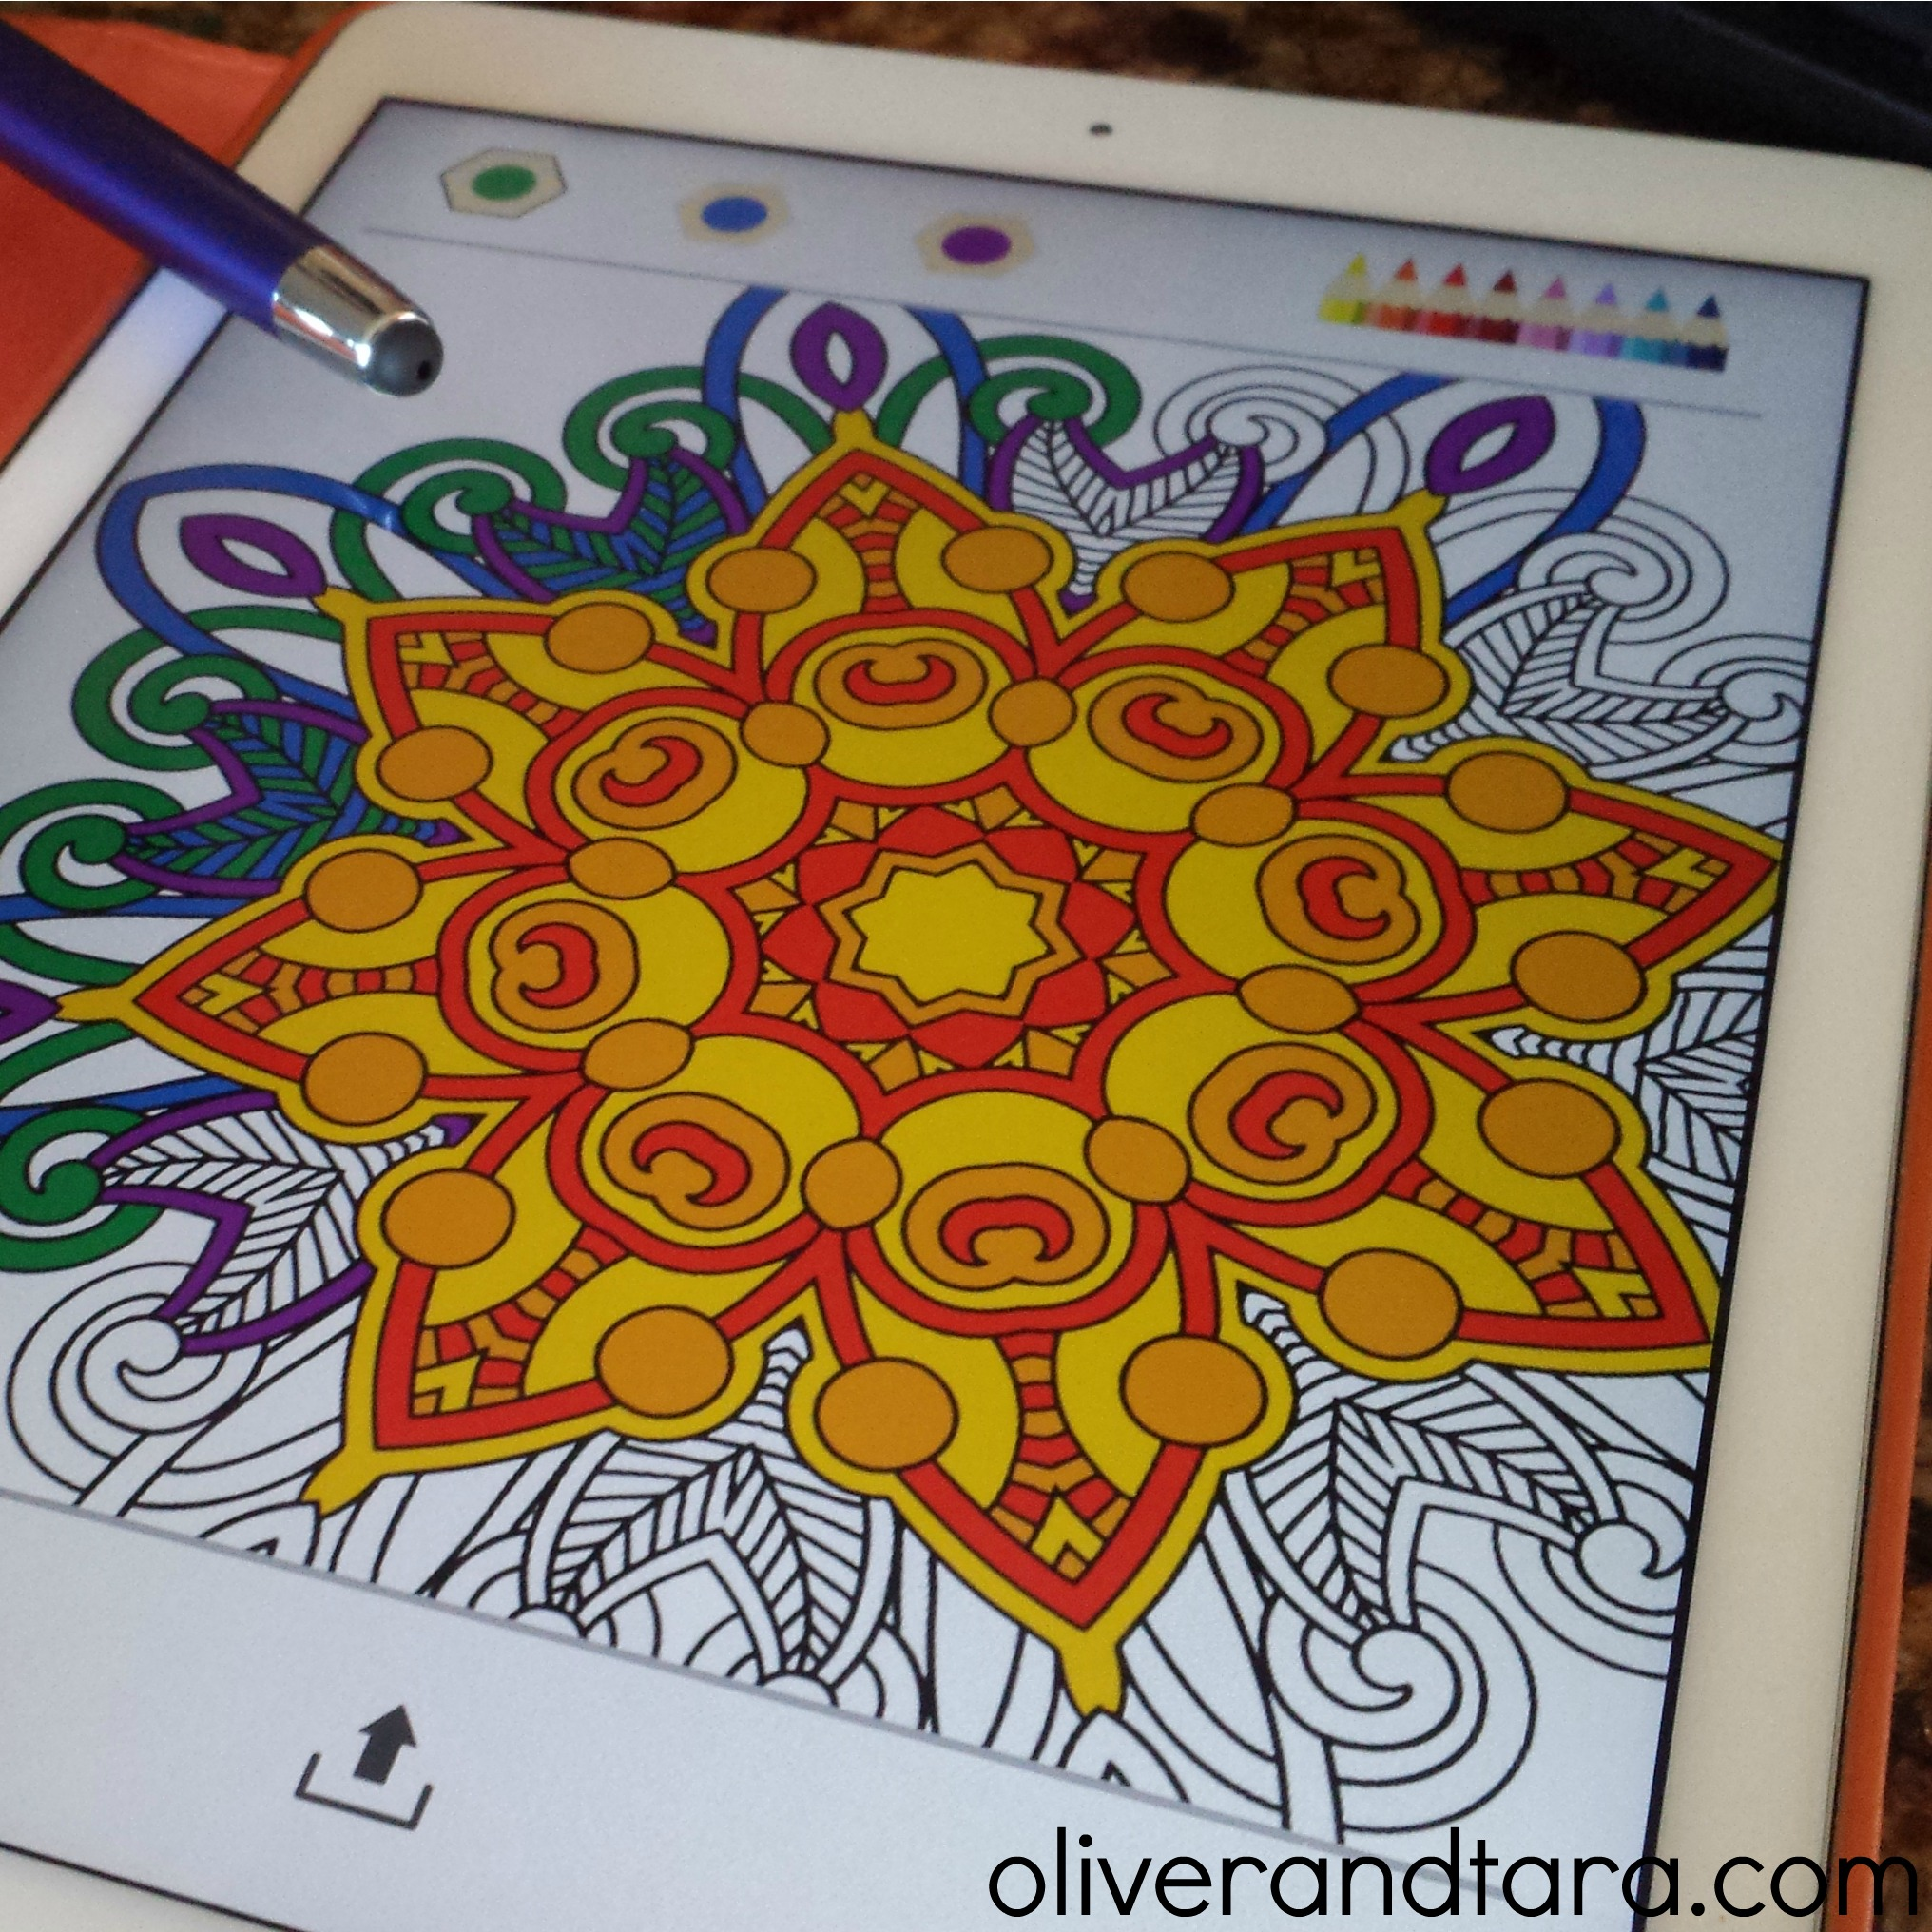 Using coloring apps to stay focused! | read more at: www.oliverandtara.com